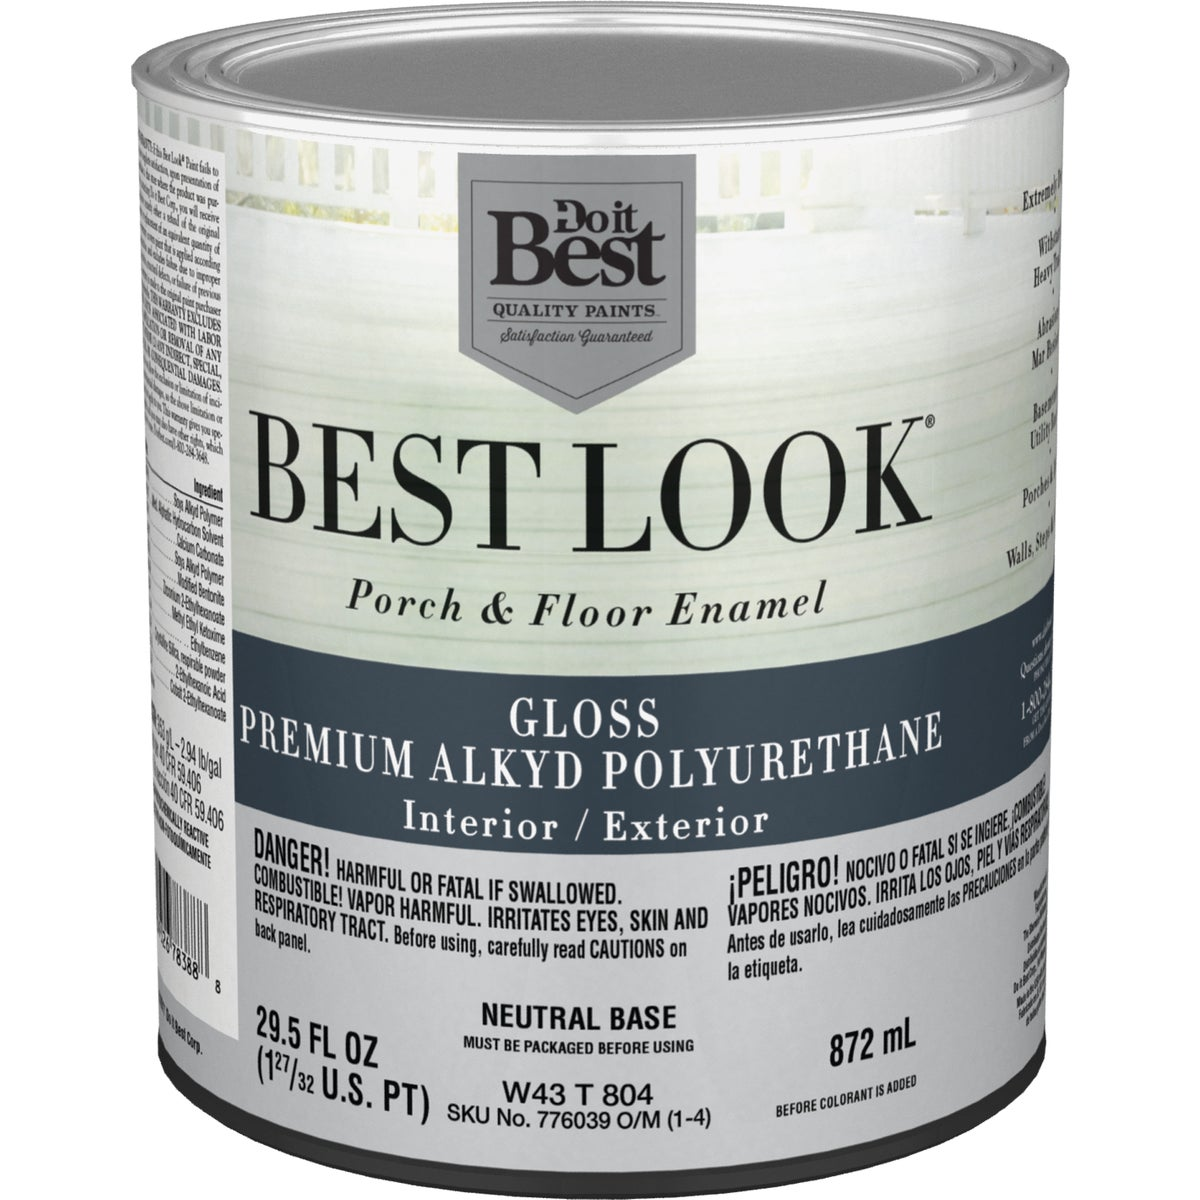 NEUT BS POLY FLOOR PAINT - W43T00804-44 by Do it Best